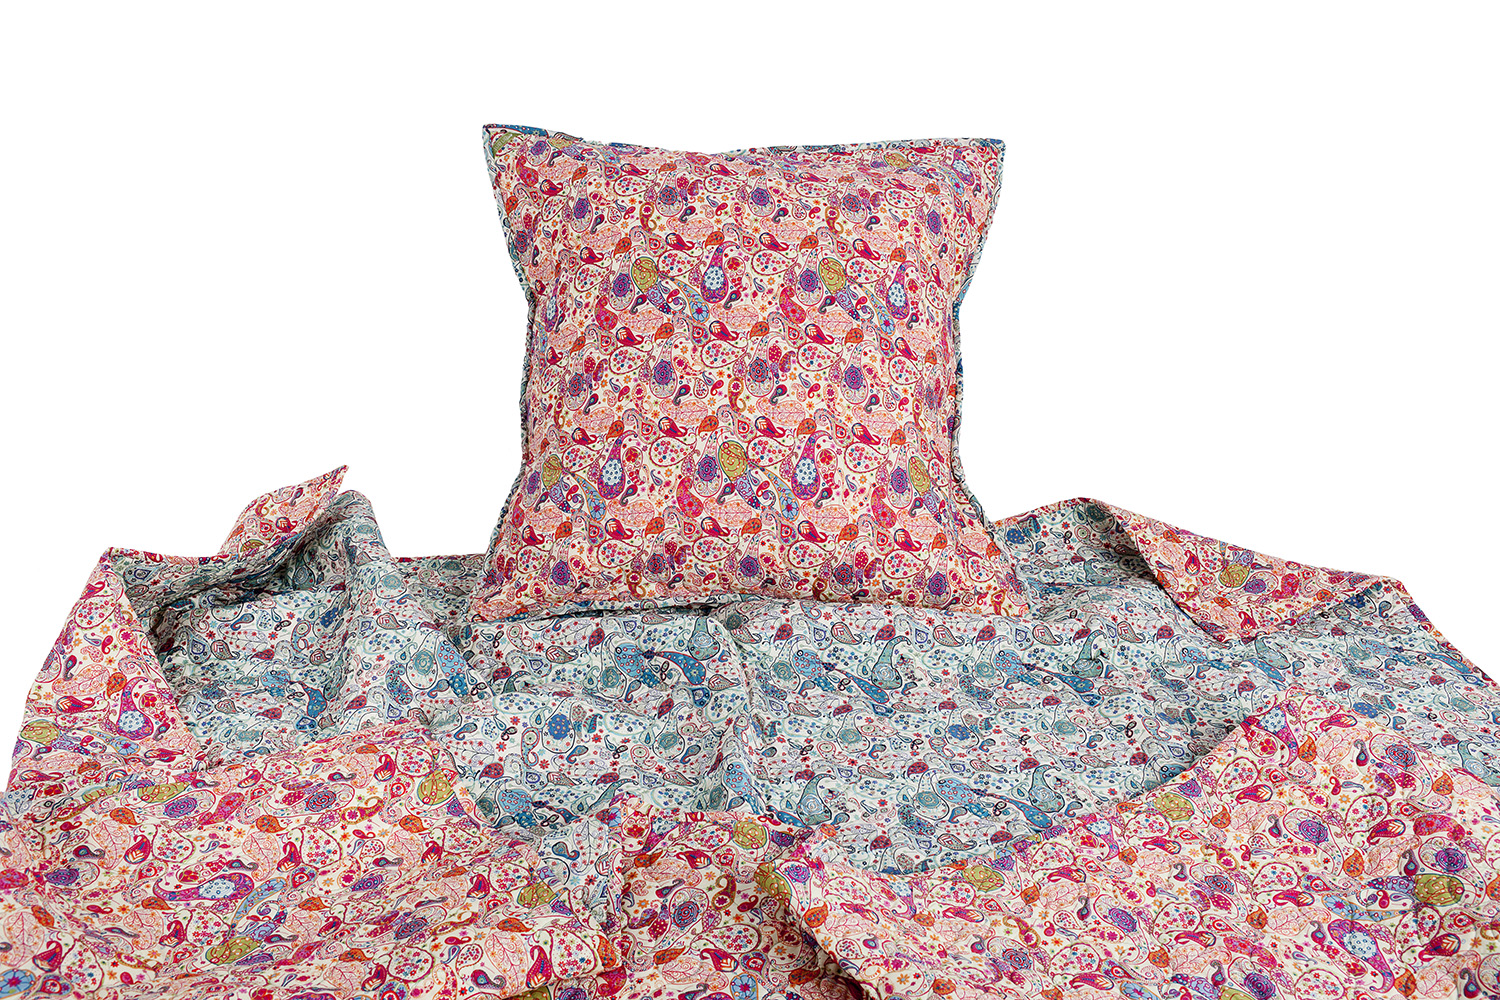 2 CUSHION COVERS Liberty Fabrics London MOON79, 60cmX60cm